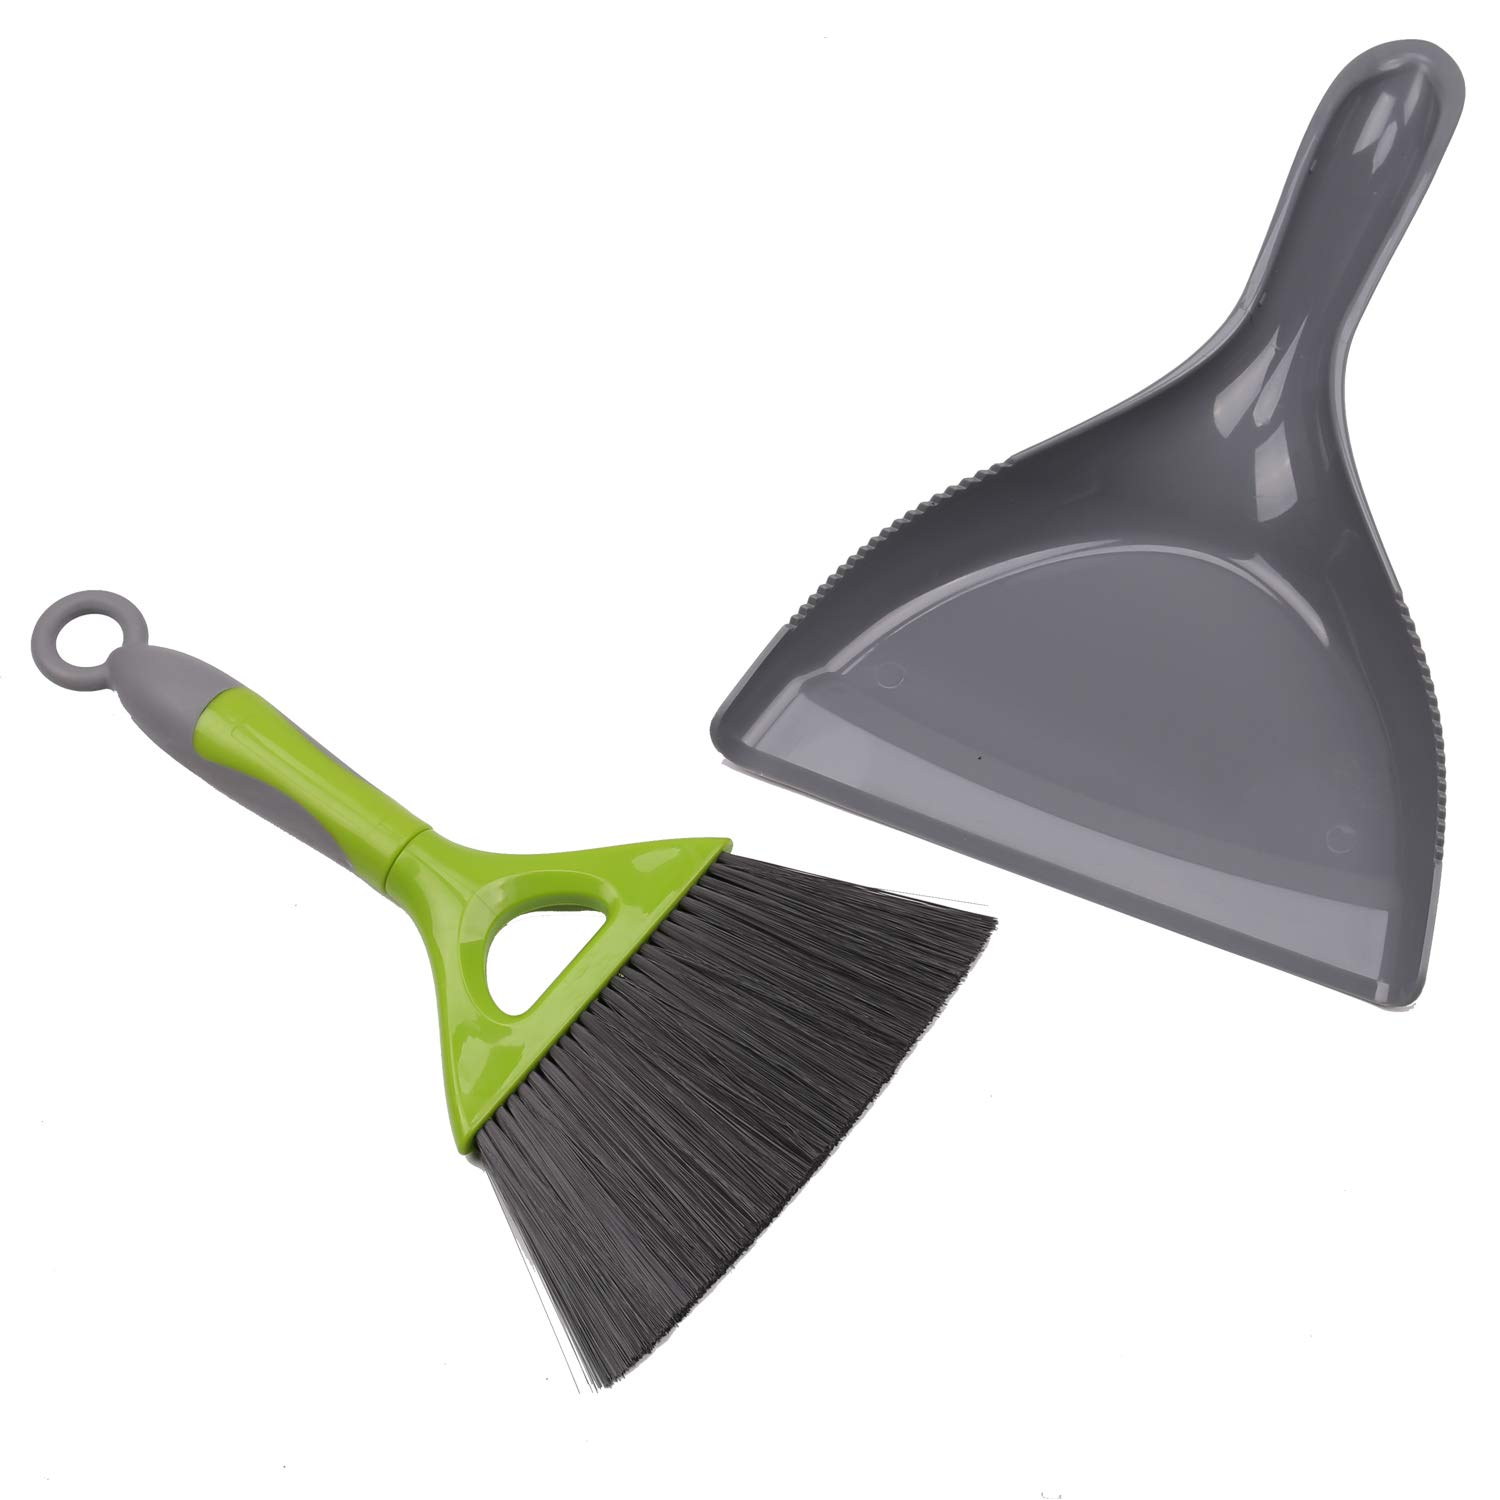 TreeLen Small Dustpan Brush for Sweeping up Cat/Kitty Litter,Mini Broom and Dustpan,for Table Count&Small Area Cleaning,Broom/Brush Clip on Dustpan